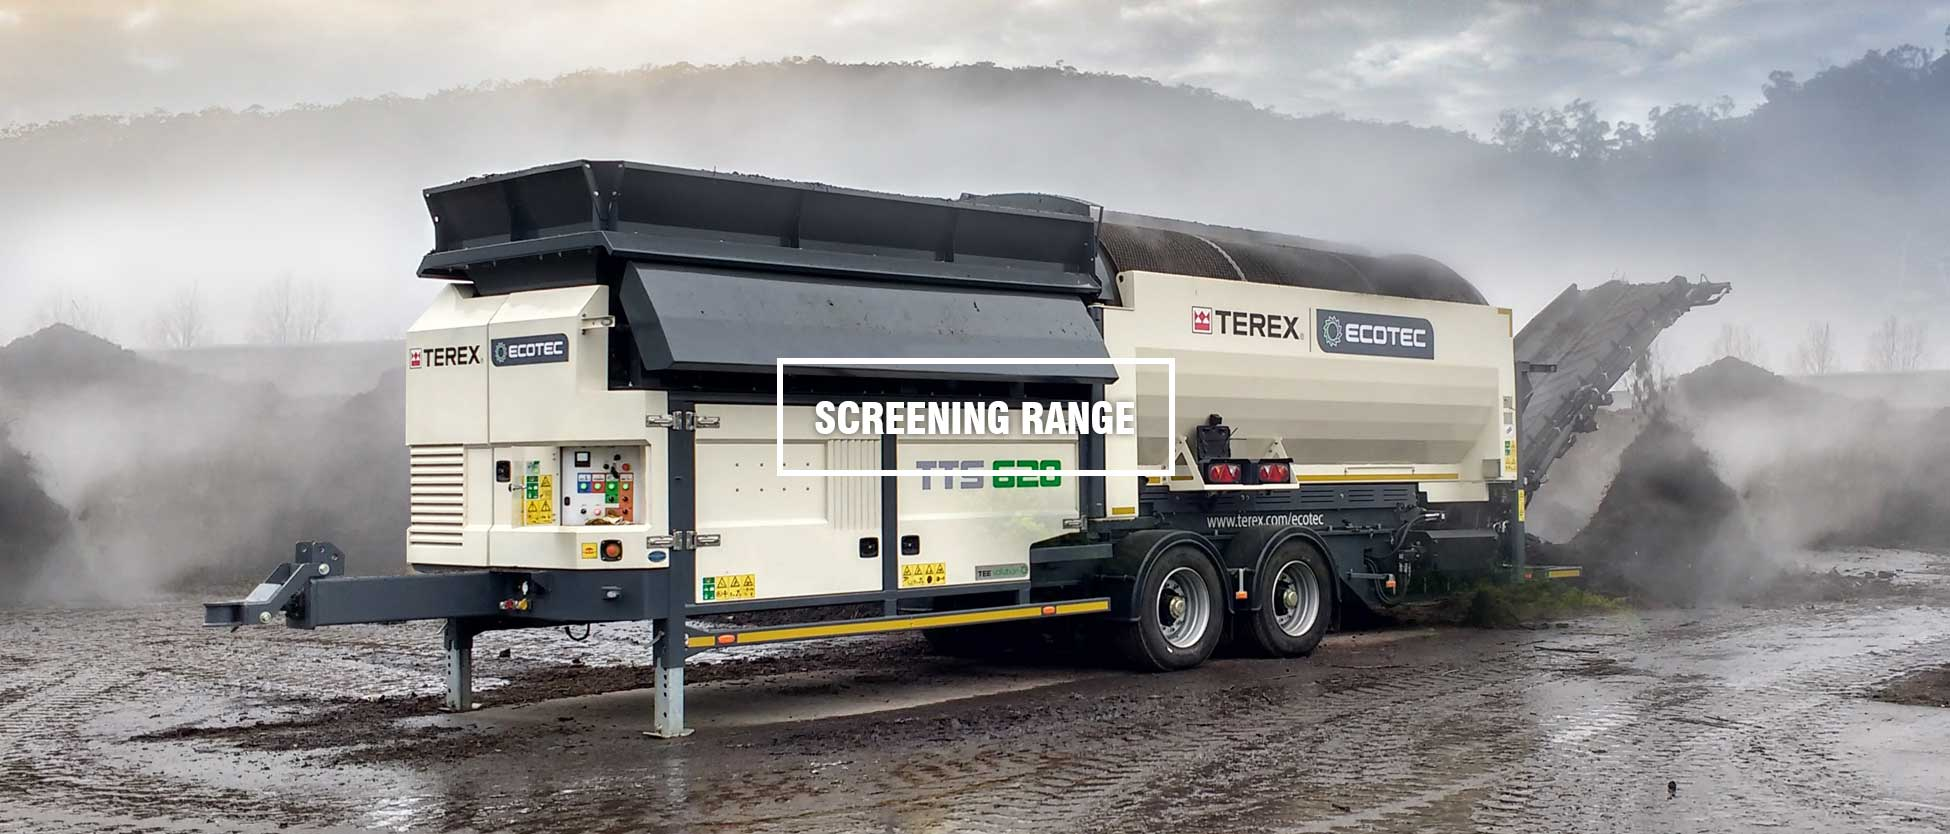 Terex Ecotec Screening Machine